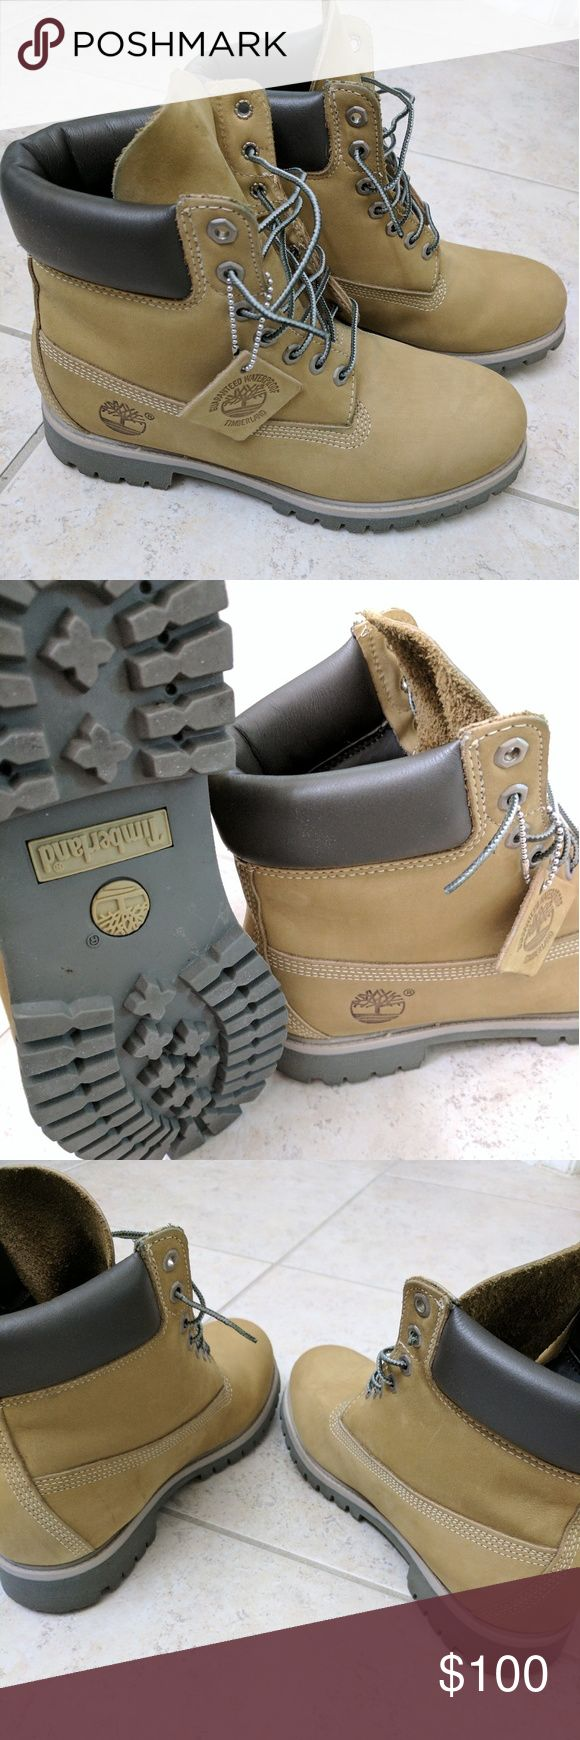 Men's Timberland Boots Size 9.5, tan colored boots. In excellent condition! Timberland Shoes Boots